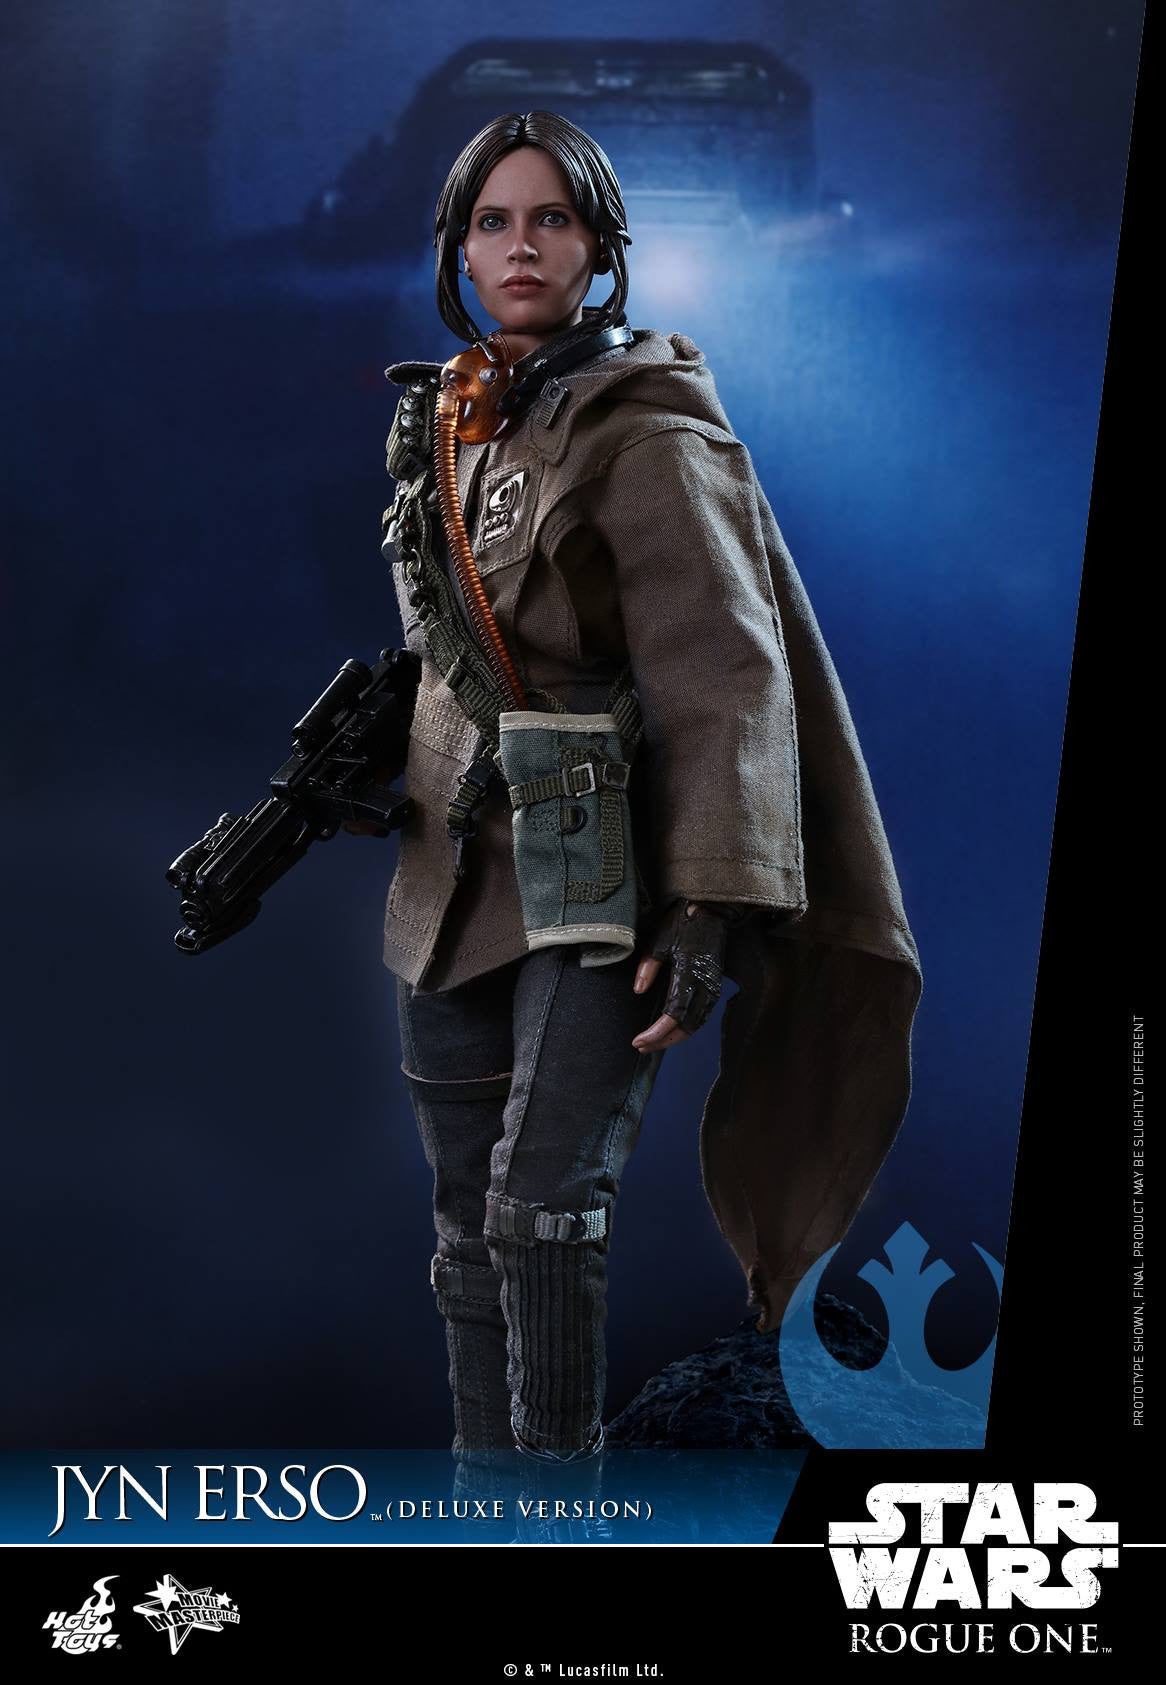 Hot Toys - MMS405 - Rogue One - A Star Wars Story - Jyn Erso (Deluxe Version) - Marvelous Toys - 5